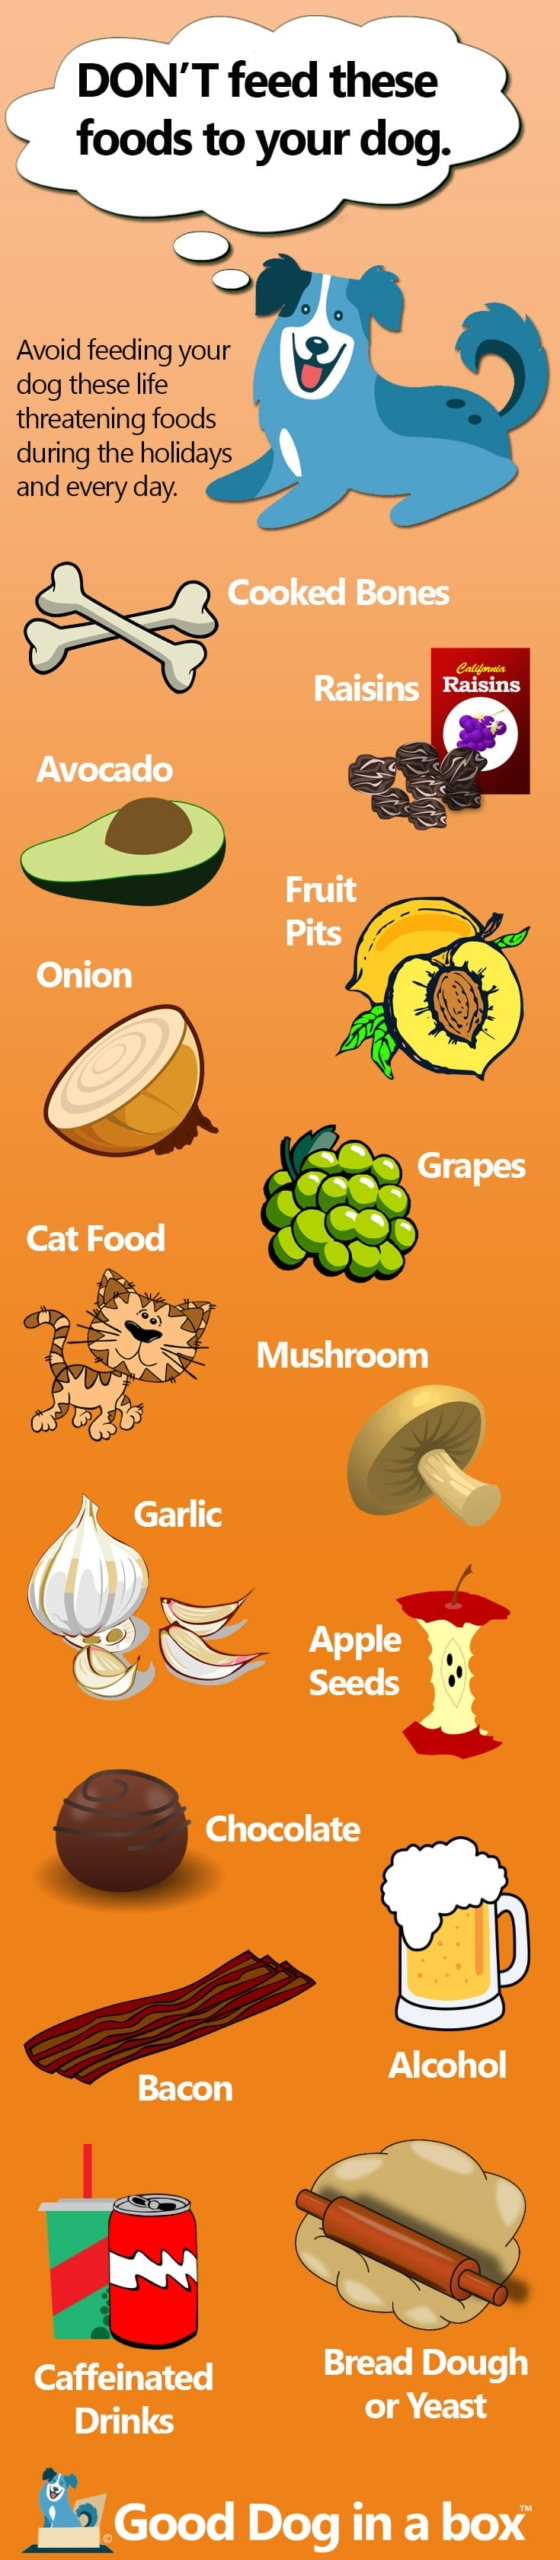 Don't Feed Your Dog These Foods Infographic